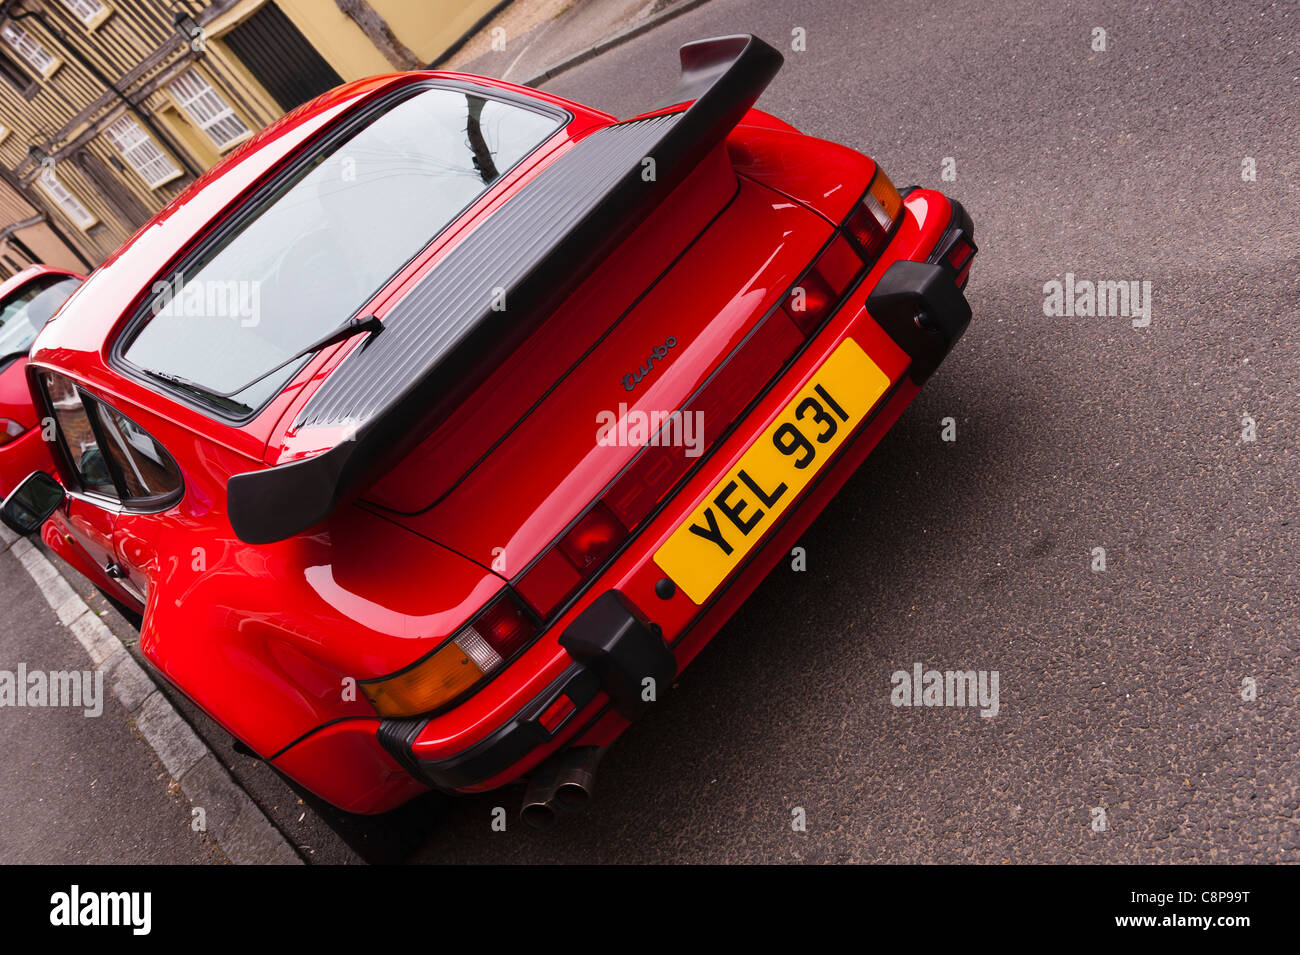 A Porsche 911 Turbo Classic Car In Lavenham Suffolk England Stock Photo Royalty Free Image